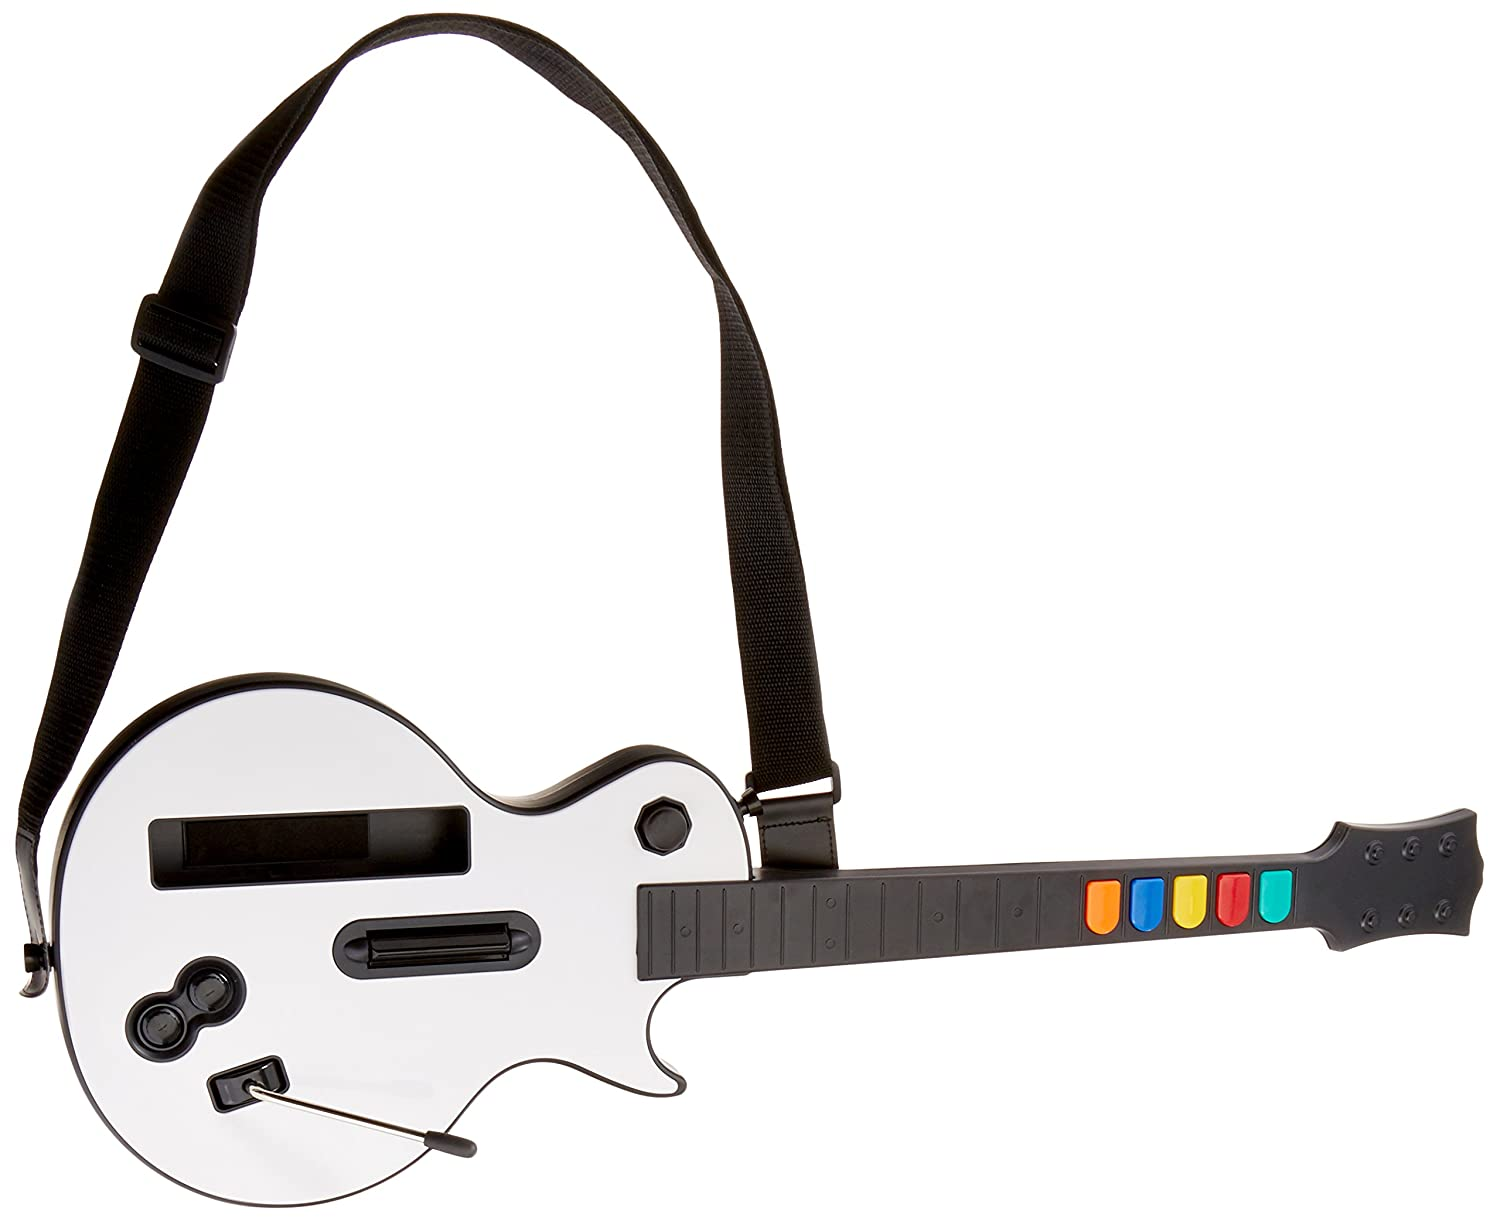 Wireless Guitar for Wii Guitar Hero and Rock Band Games (Excluding Rock Band 1), Color White